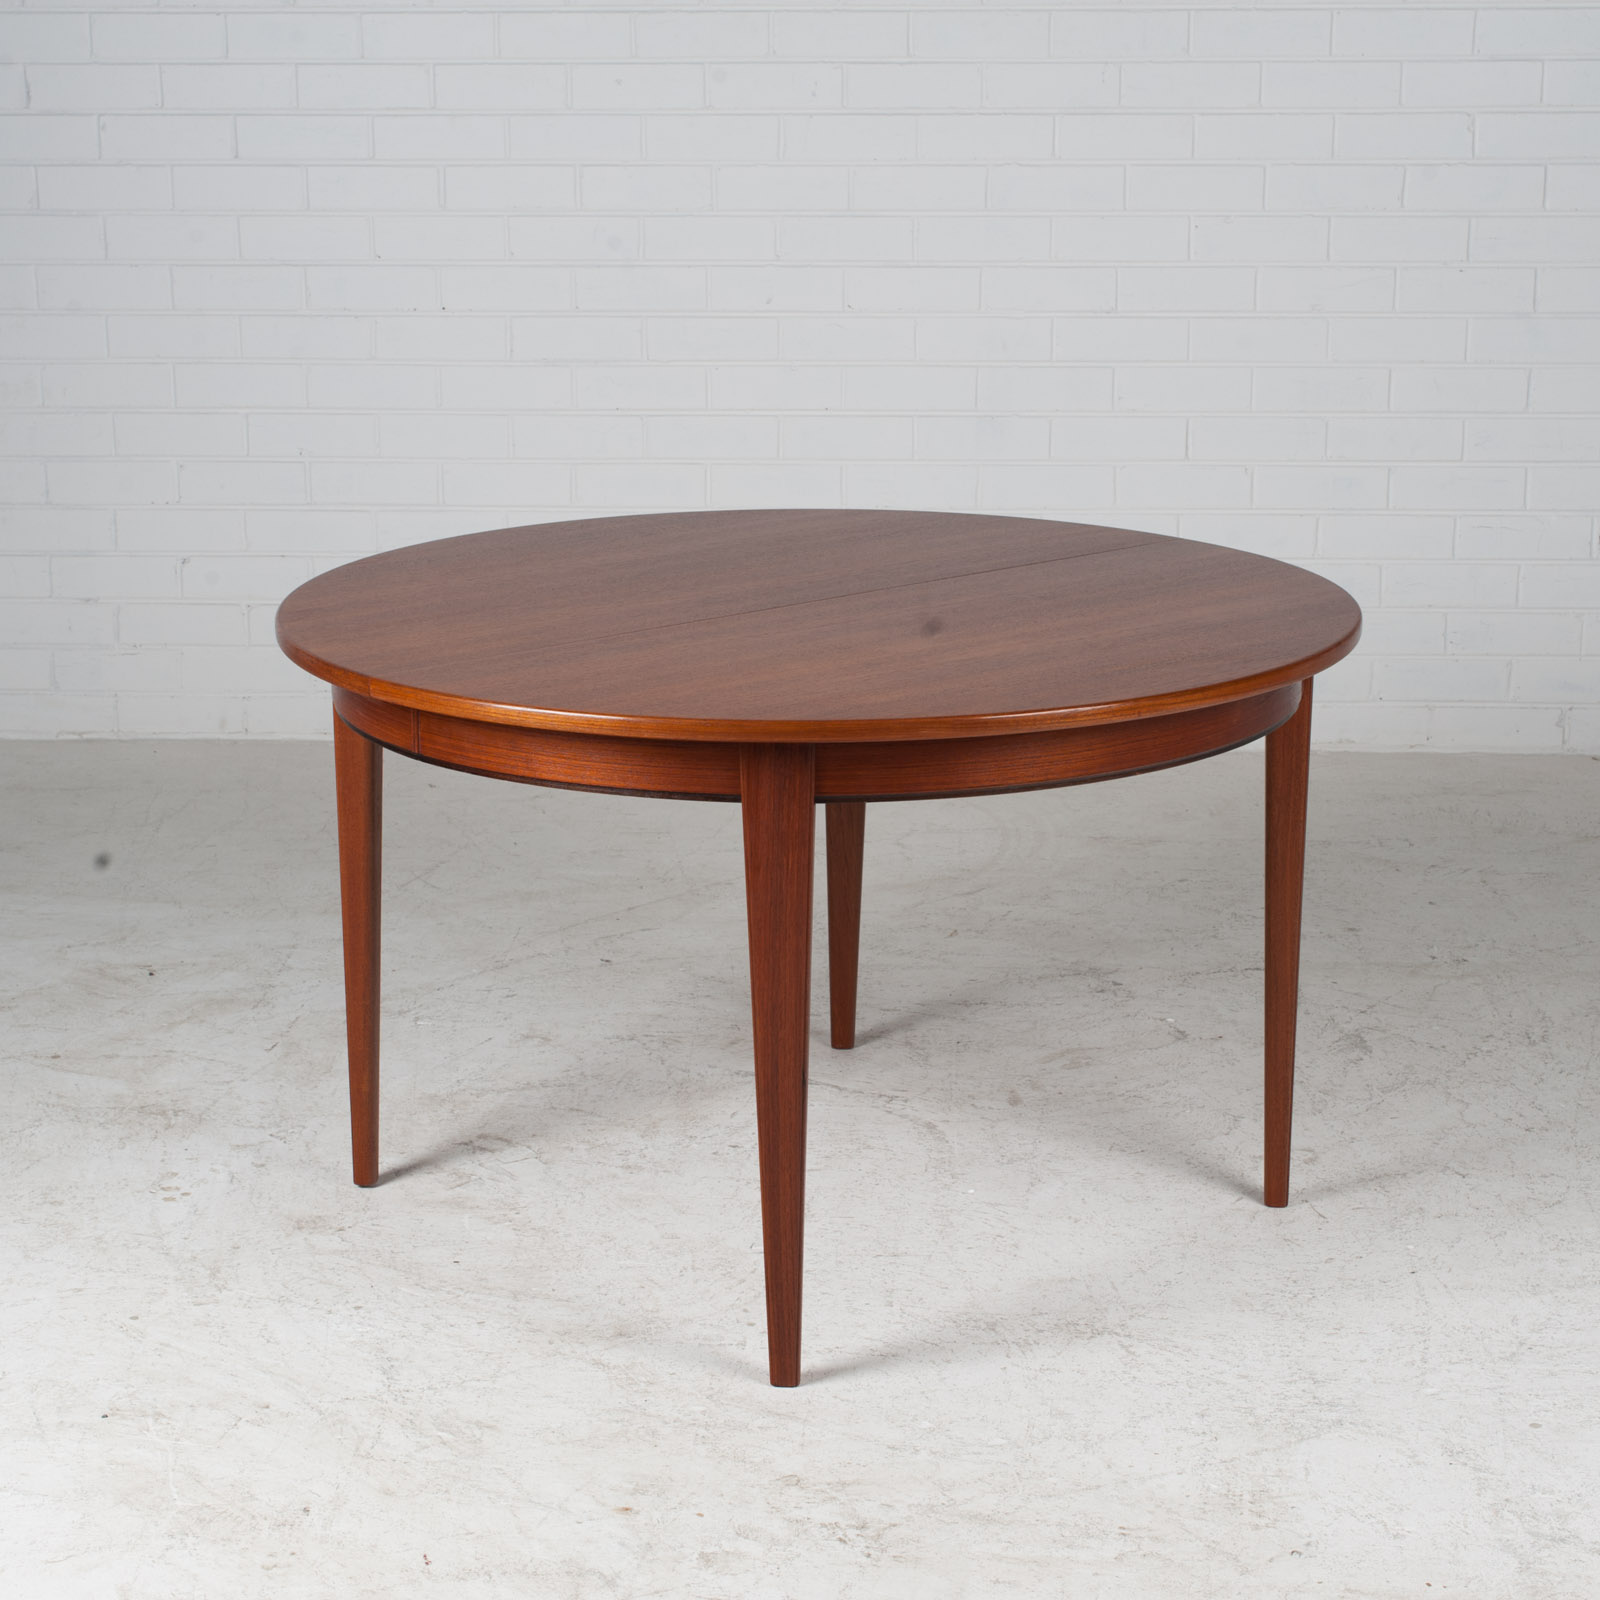 Round Dining Table By Omann Jun In Teak With Three Extensions 1960s Denmark 02